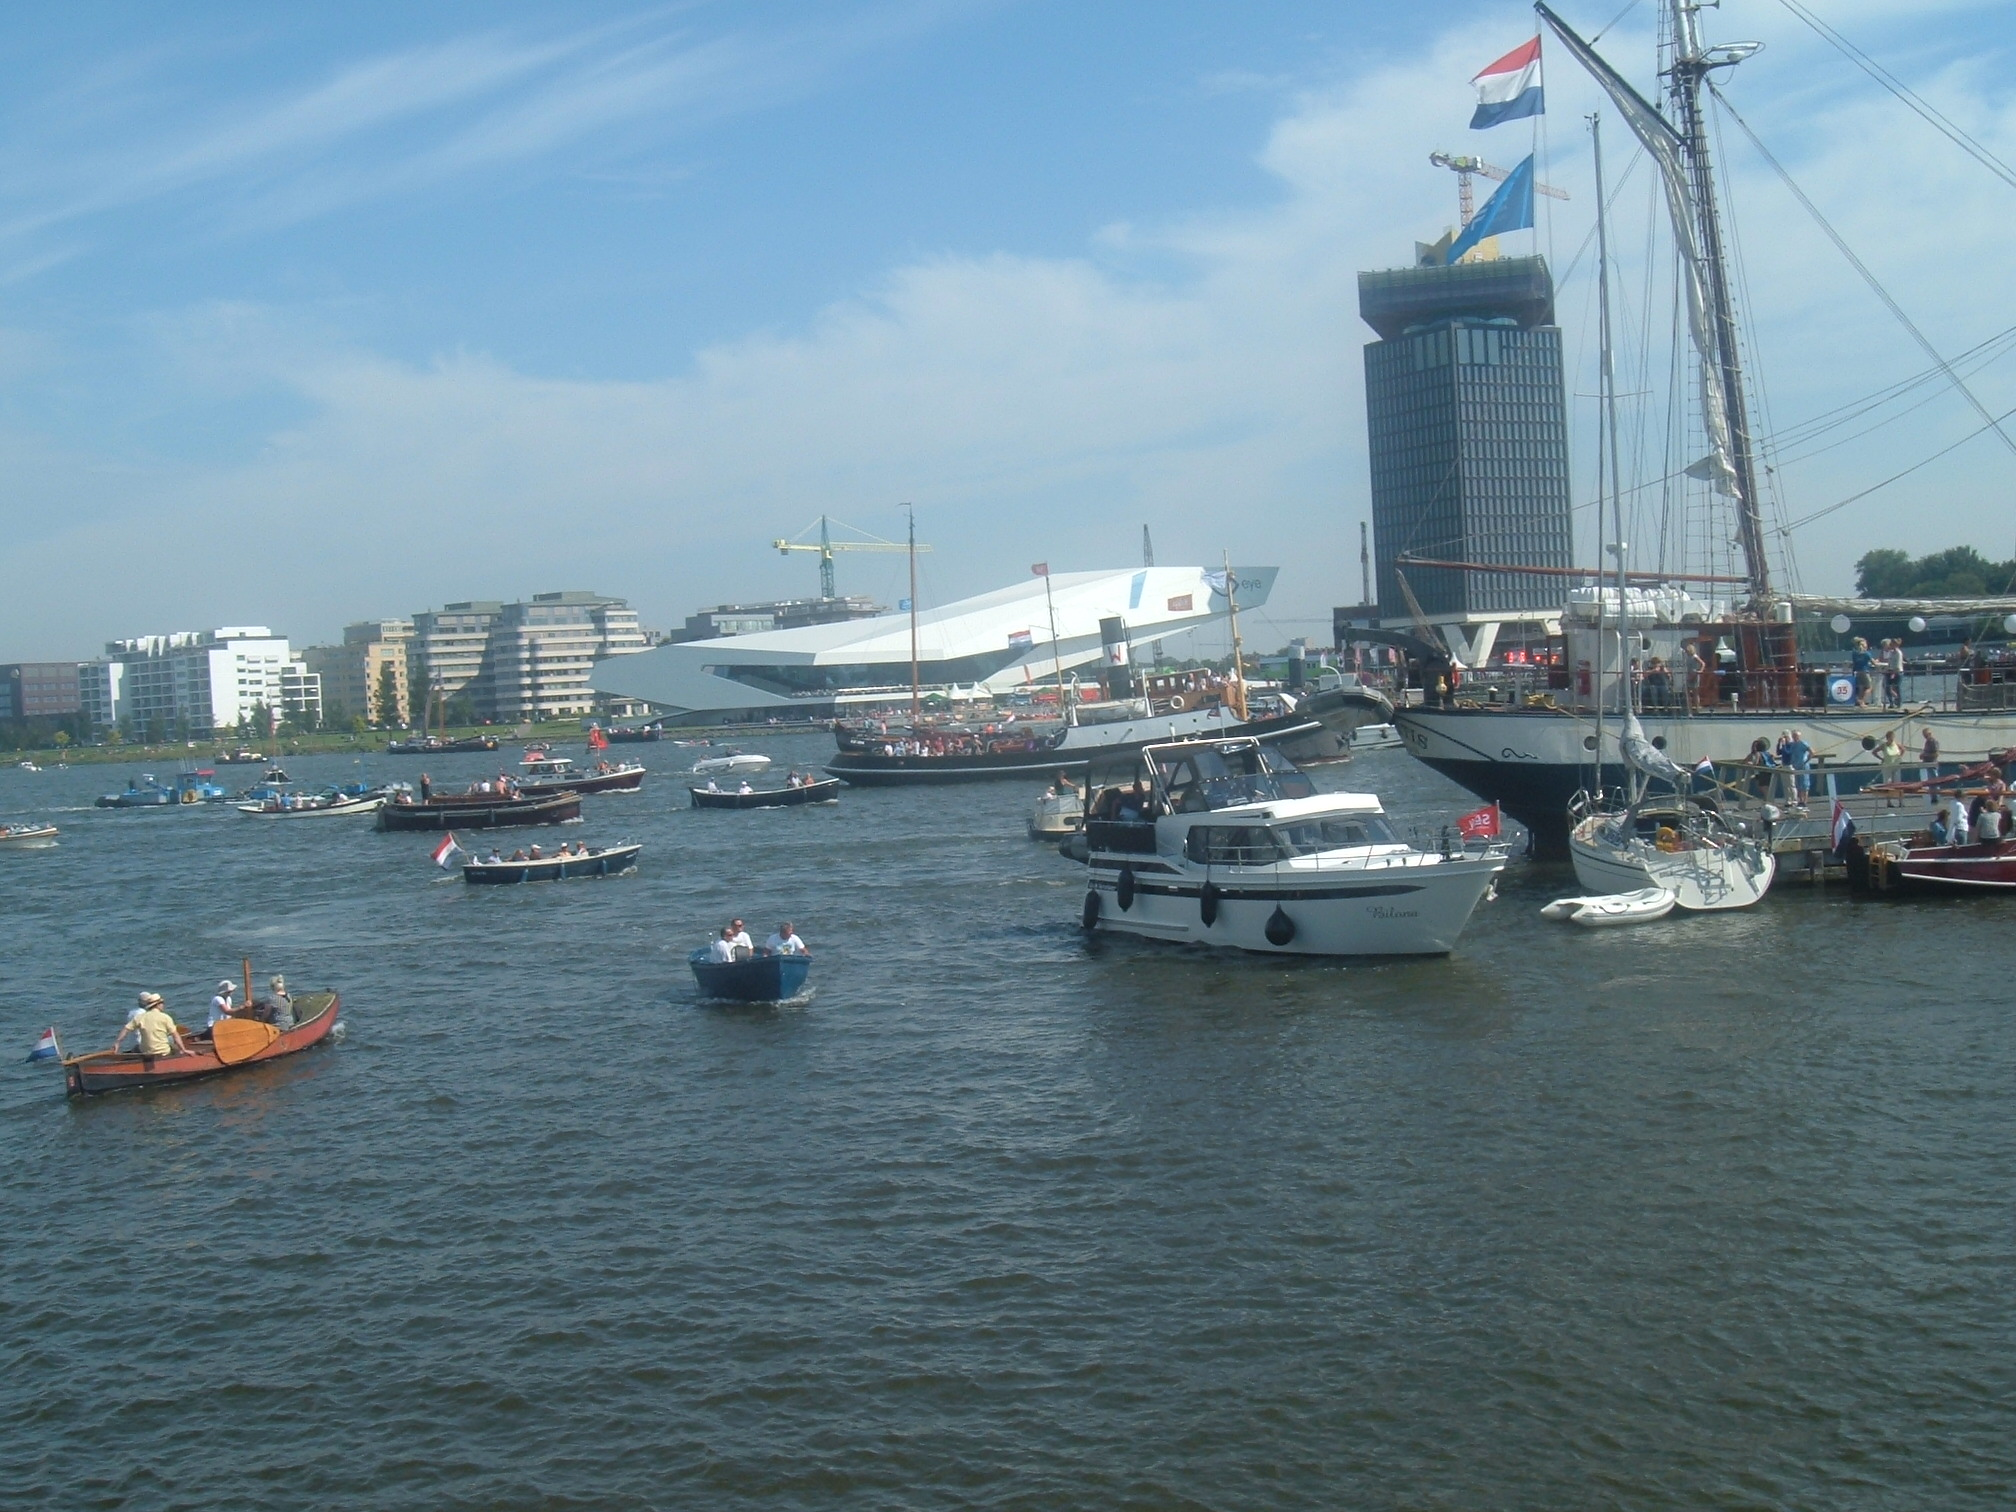 Boats visiting Amsterdam Sail 2015